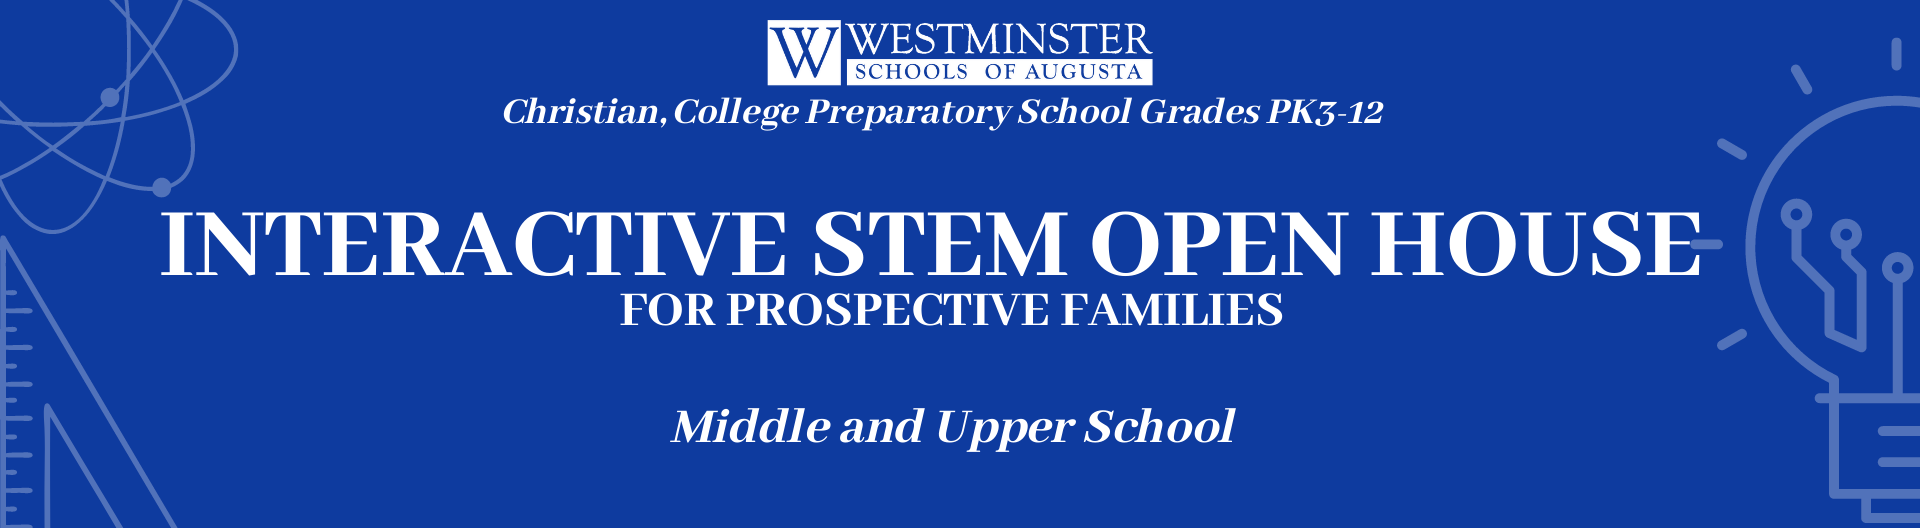 Interactive Open House Banner | Westminster